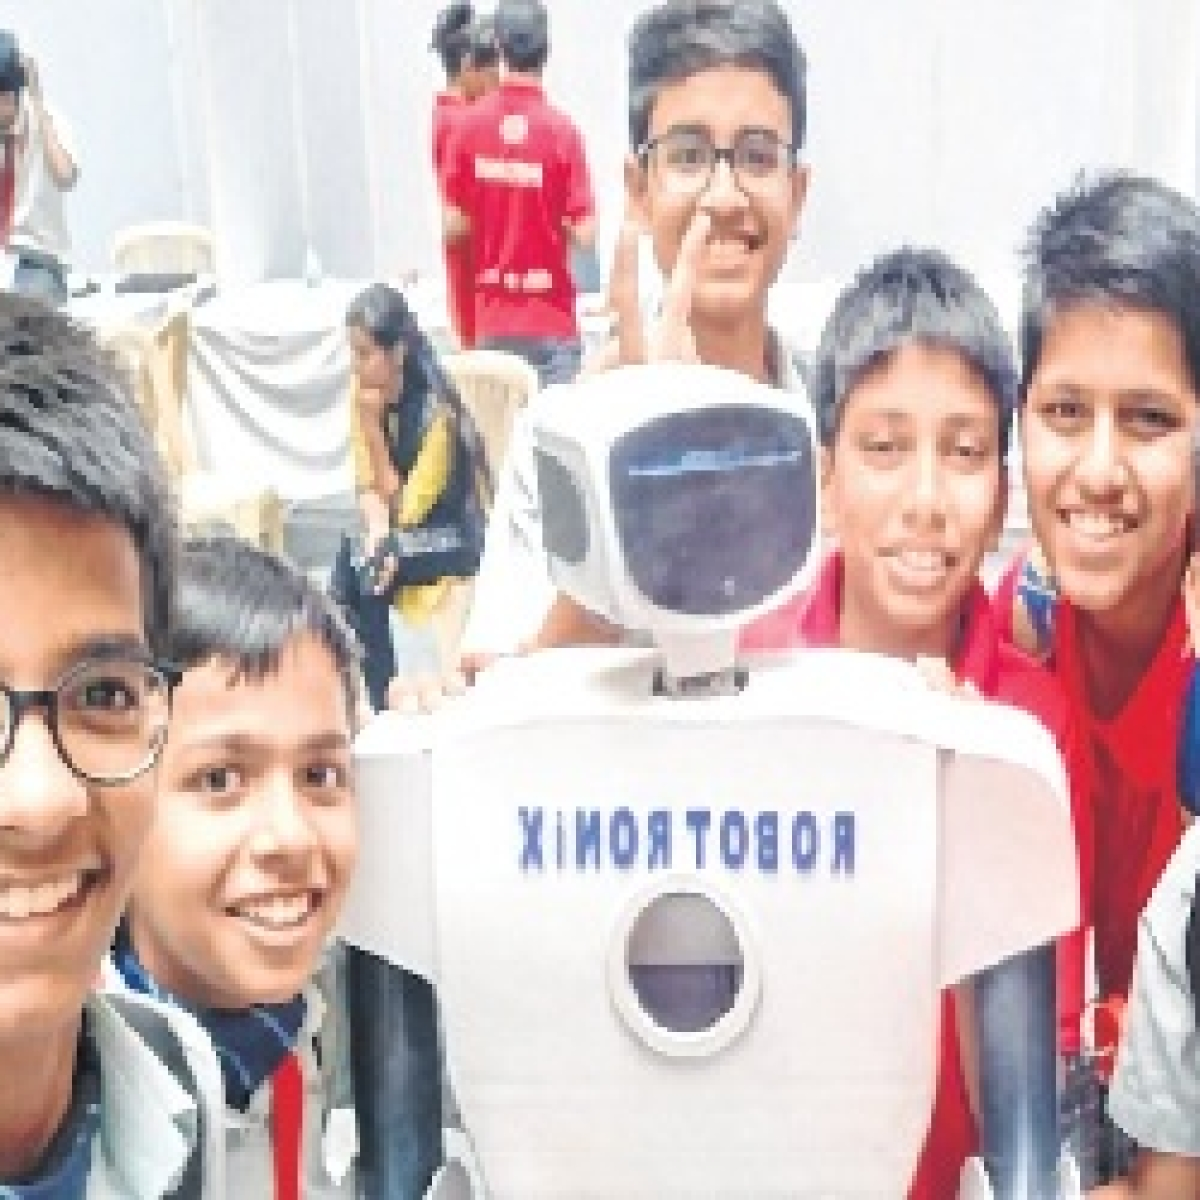 Robots can influence children's opinions significantly